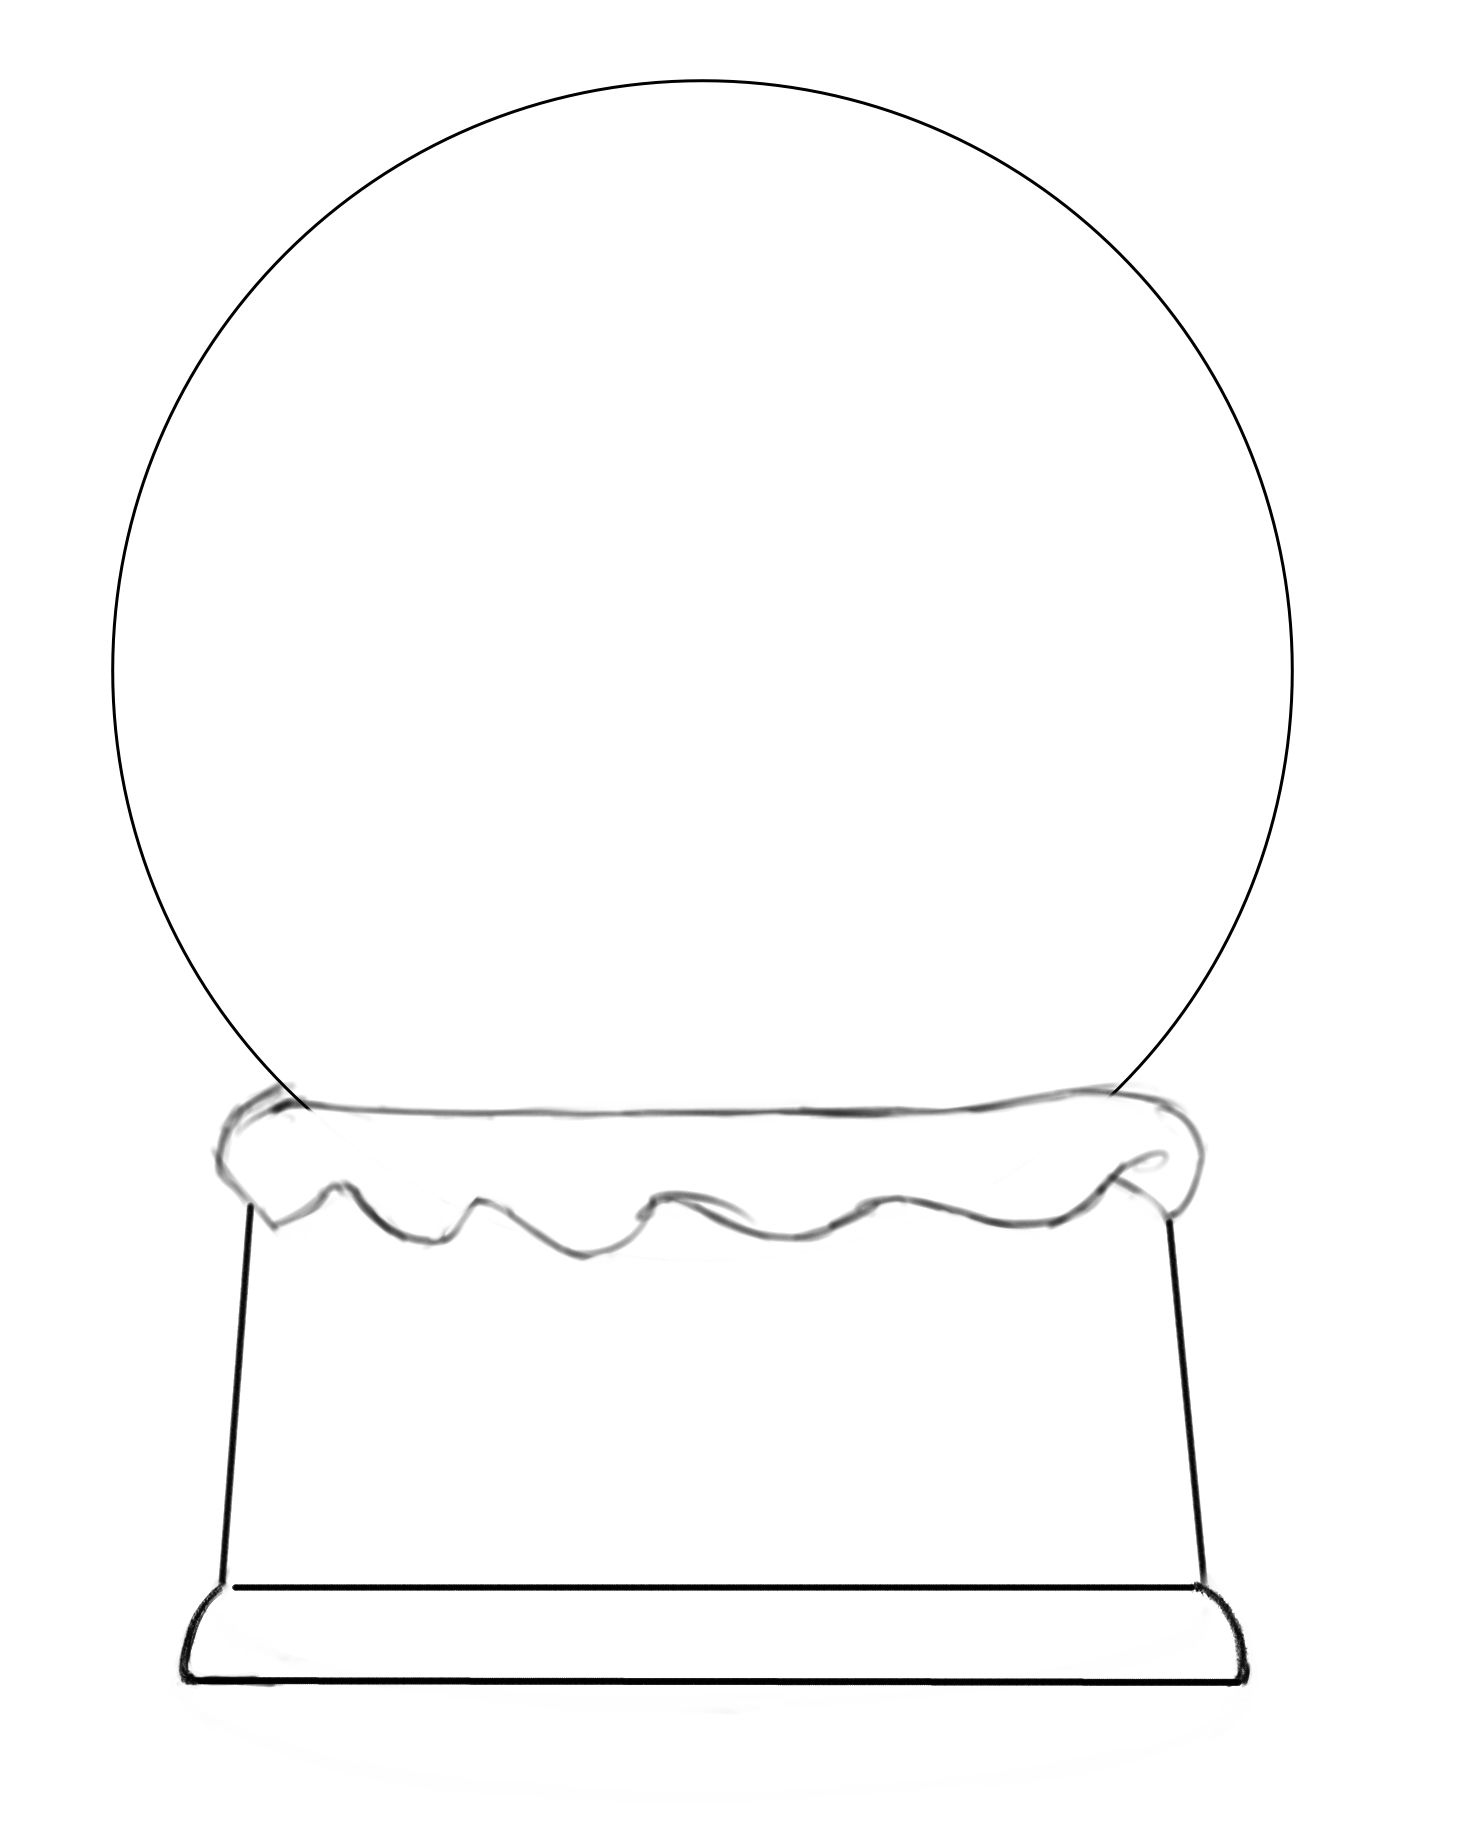 hand made coloring pages - photo#32